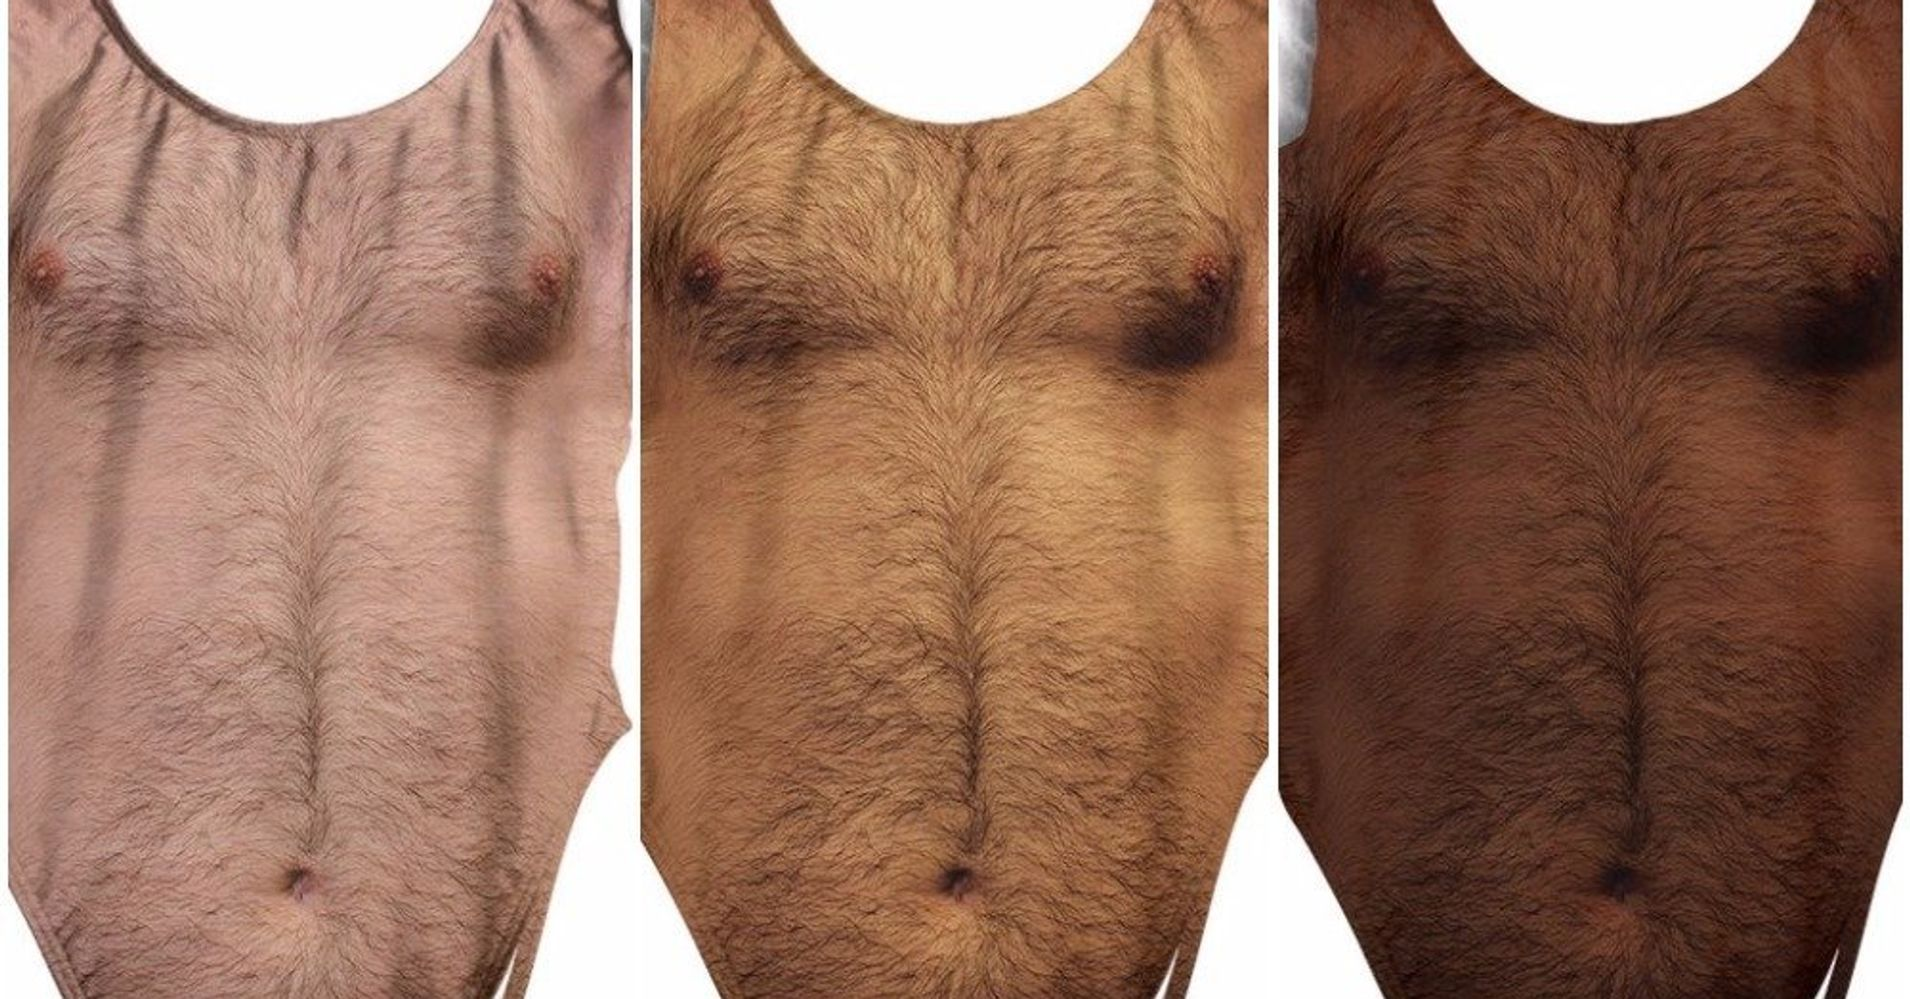 This Bathing Suit Covered In Chest Hair Is Actually Genius Huffpost